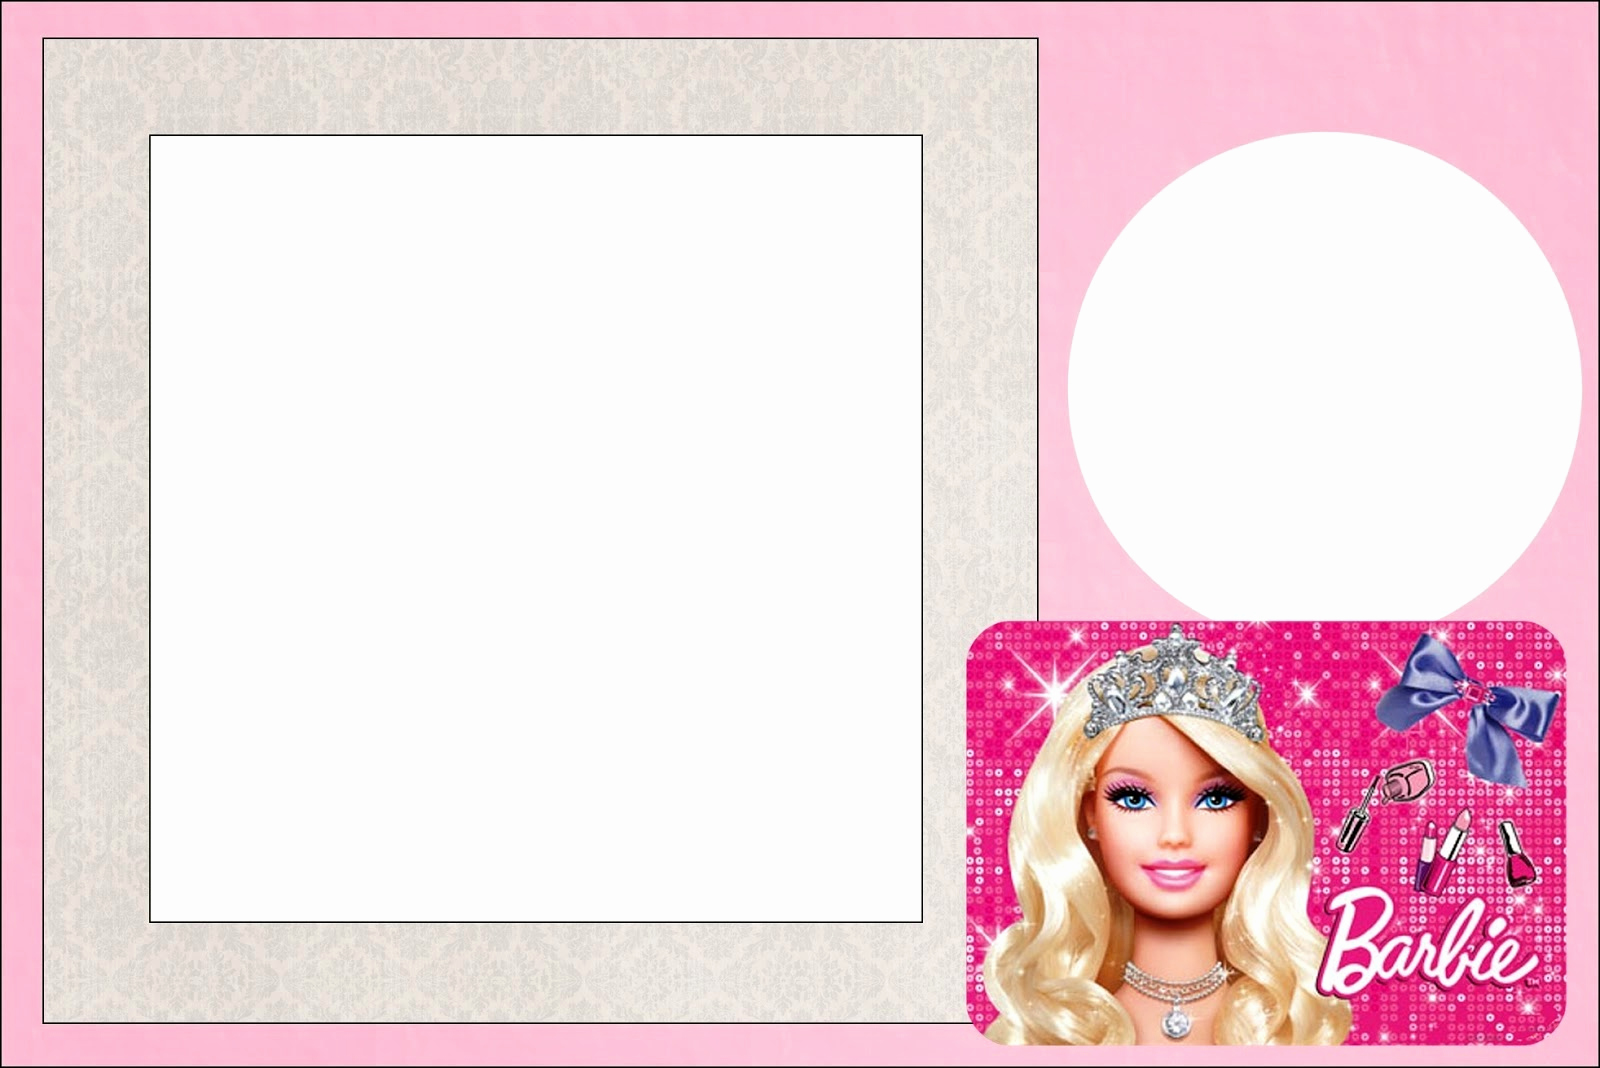 Free Barbie Invitation Templates Luxury Barbie Life Style Free Printable Invitations